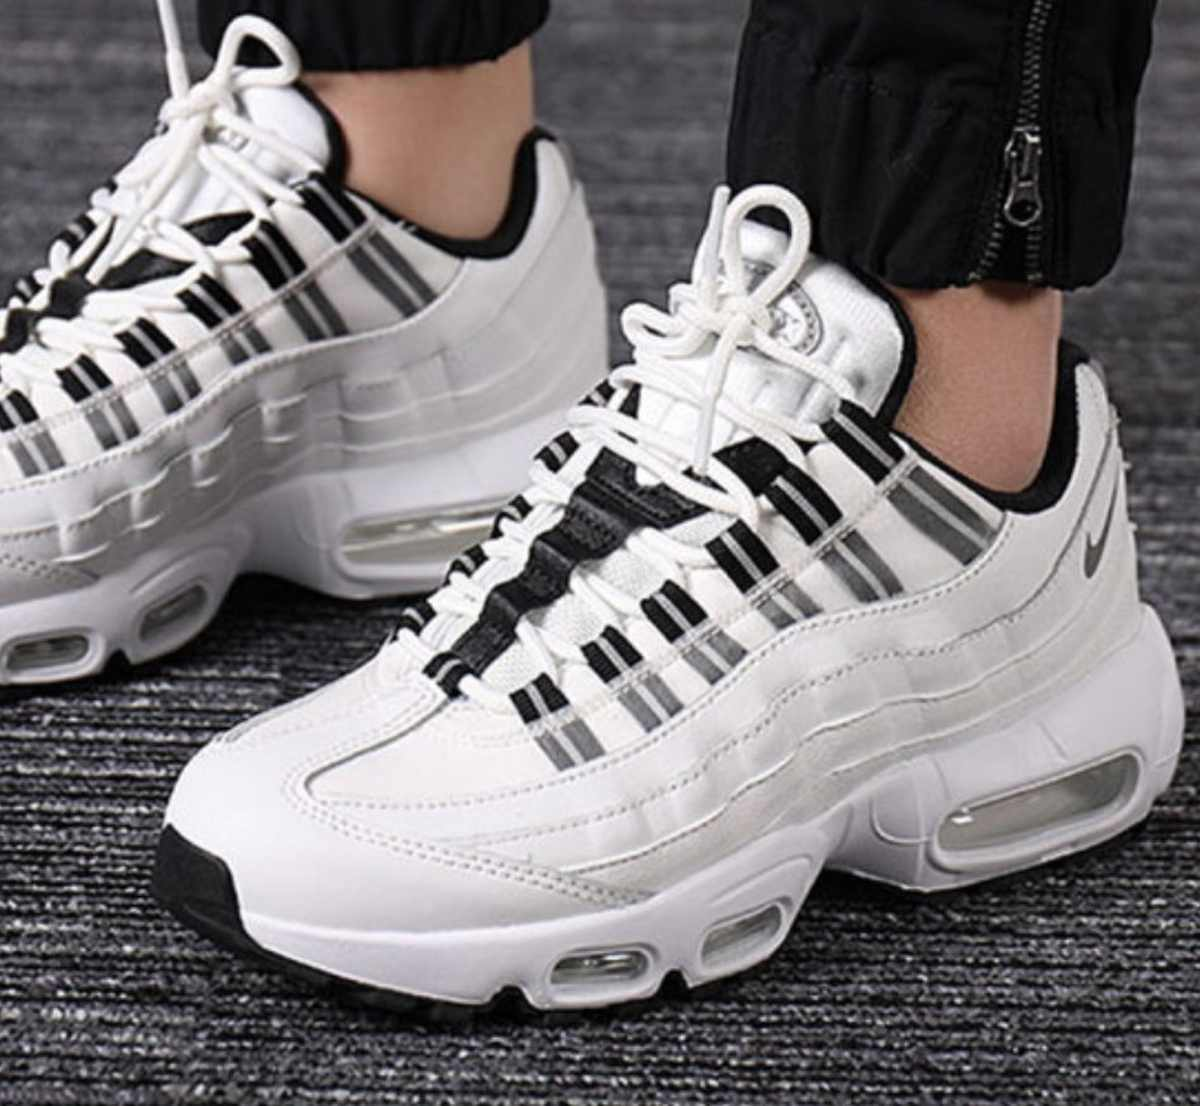 Nike Air Max 95 Dames Wit 307960 113 21